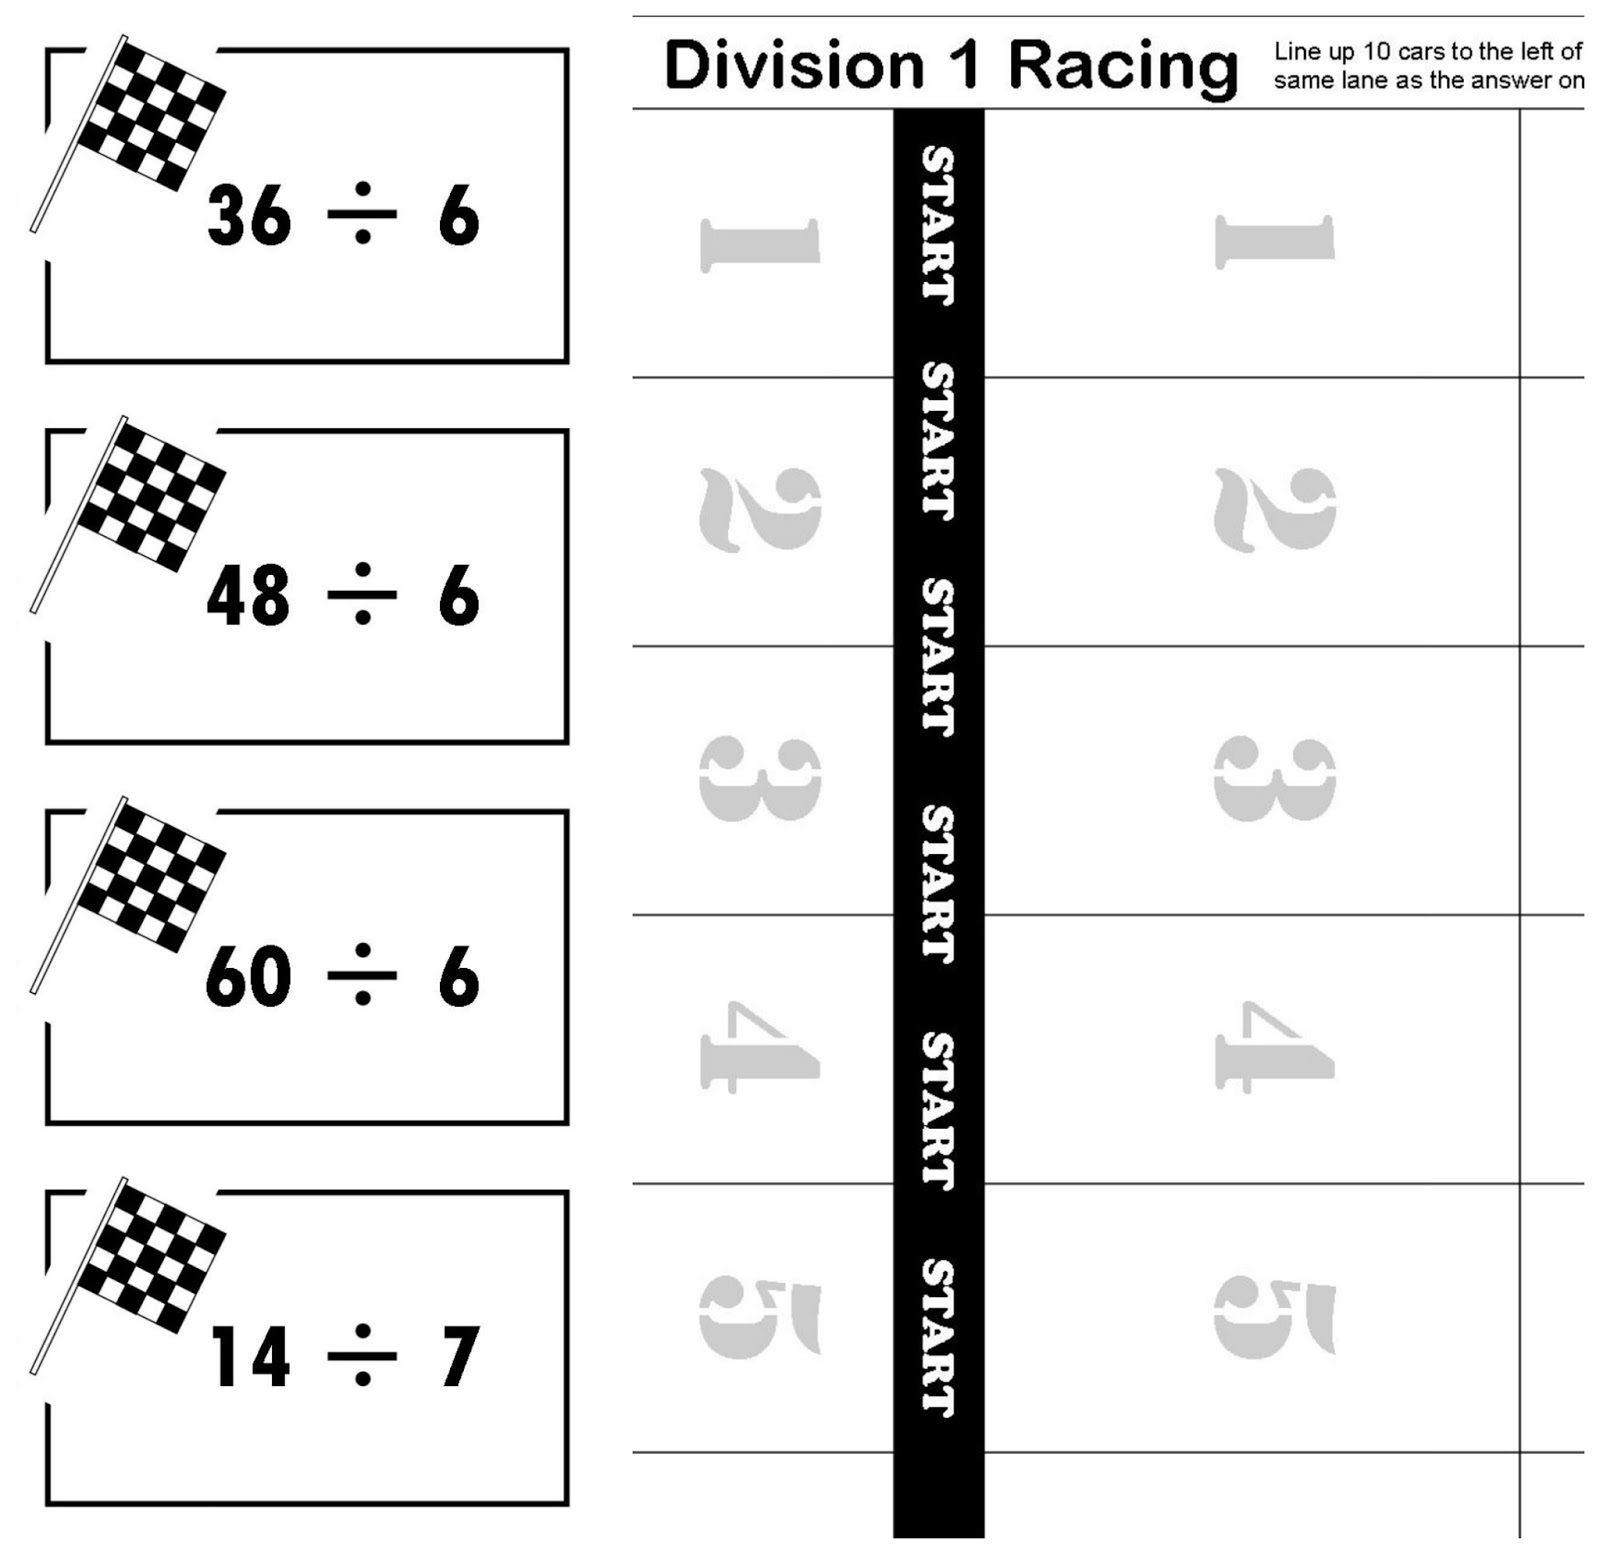 Uncategorized Fun Printable Games relentlessly fun deceptively educational division 1 racing printable math game